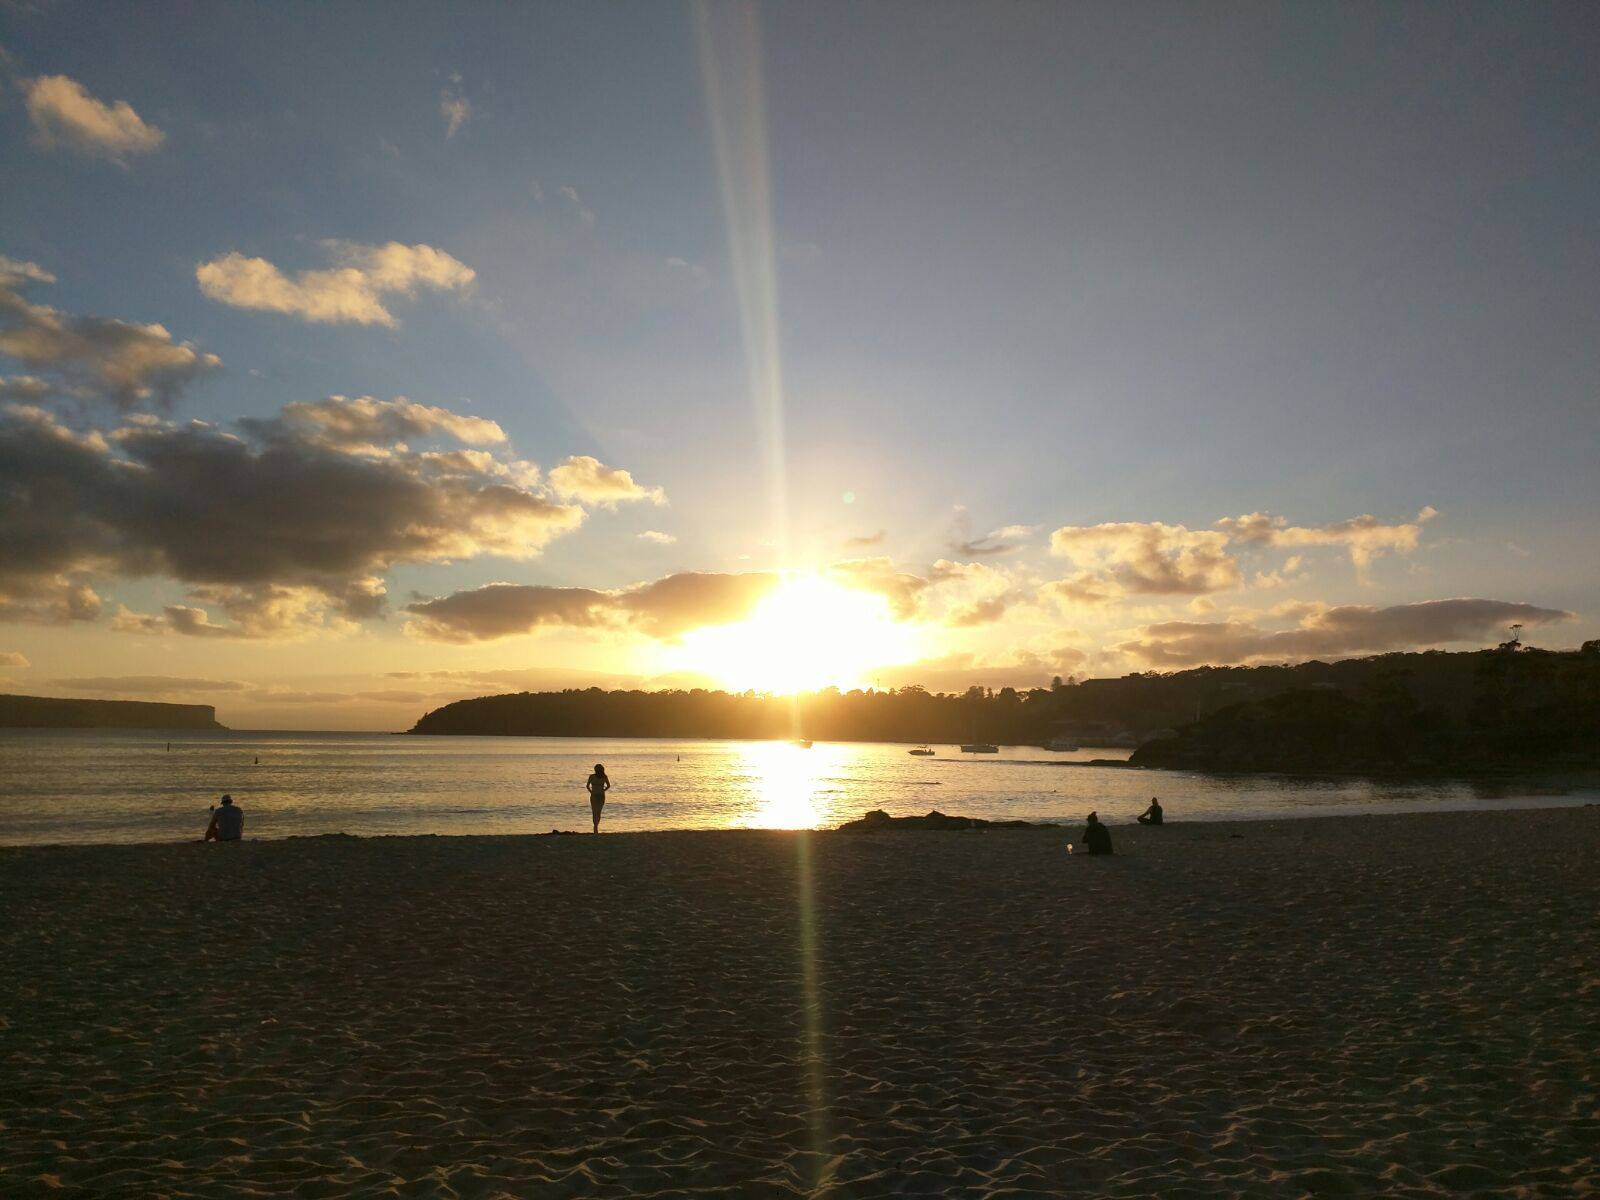 Sunrise over Balmoral Beach, Sydney Australia